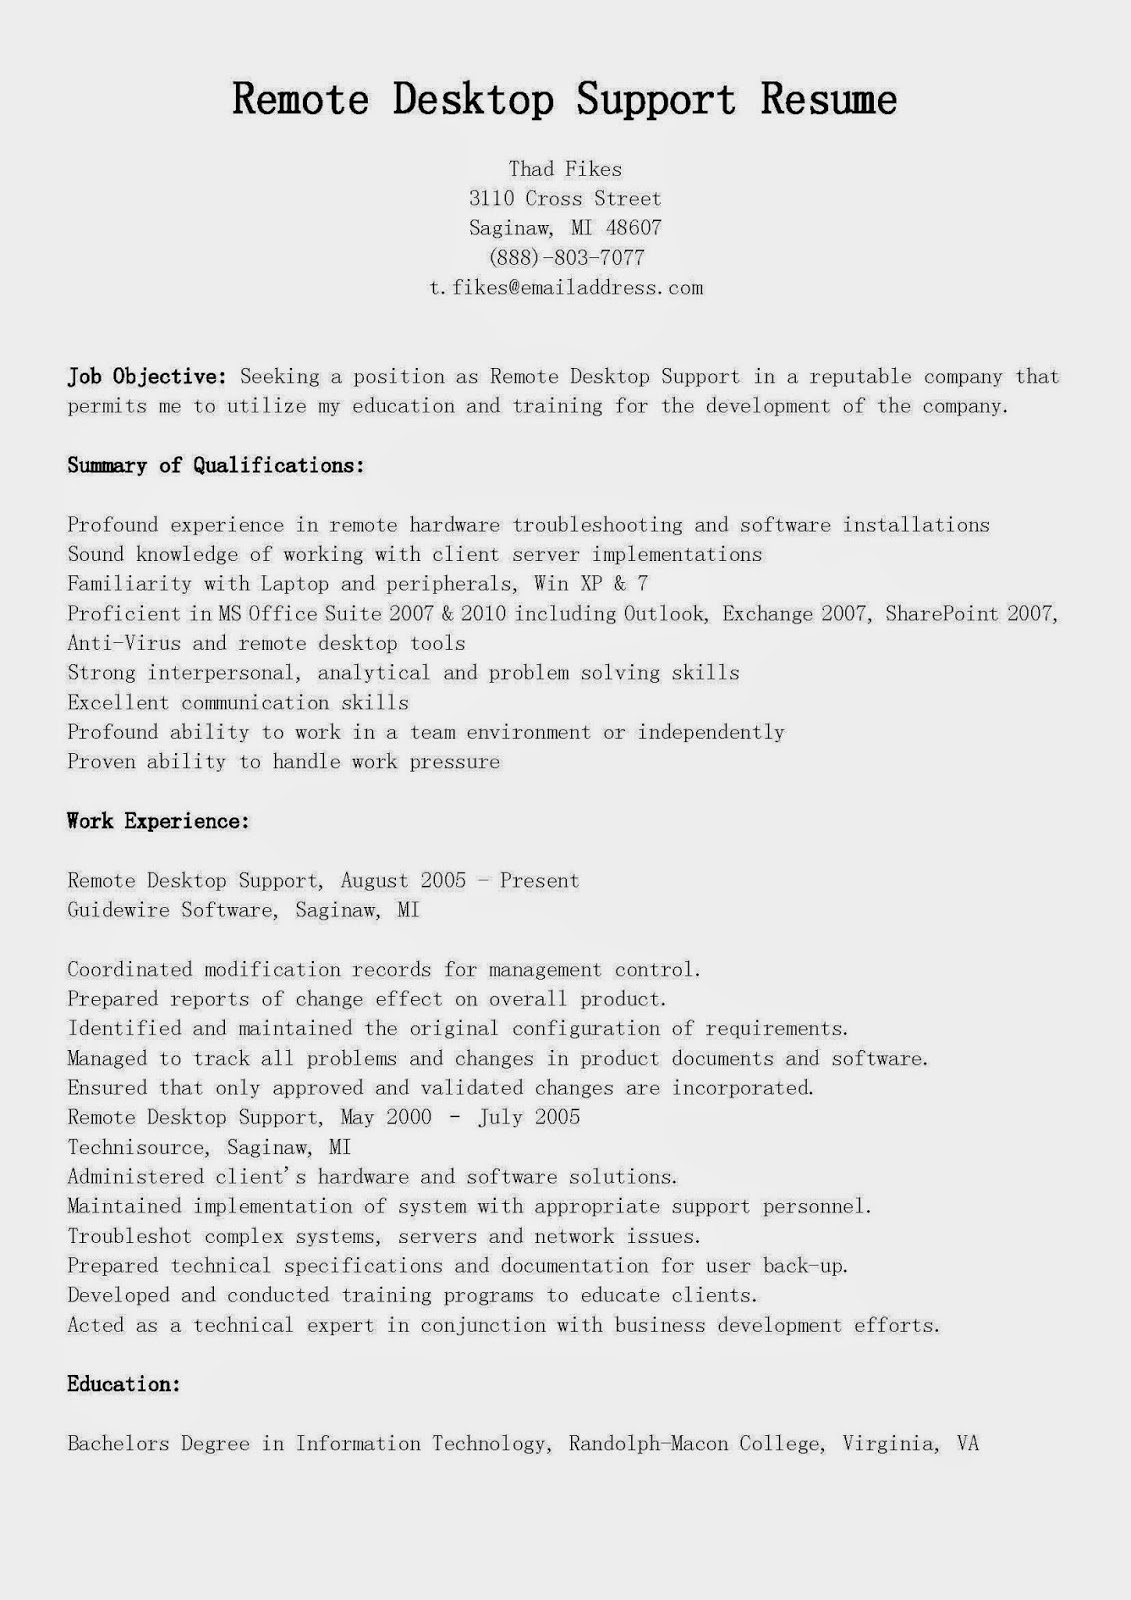 Desktop Support Resume Sample Resume Samples Remote Desktop Support Resume Sample